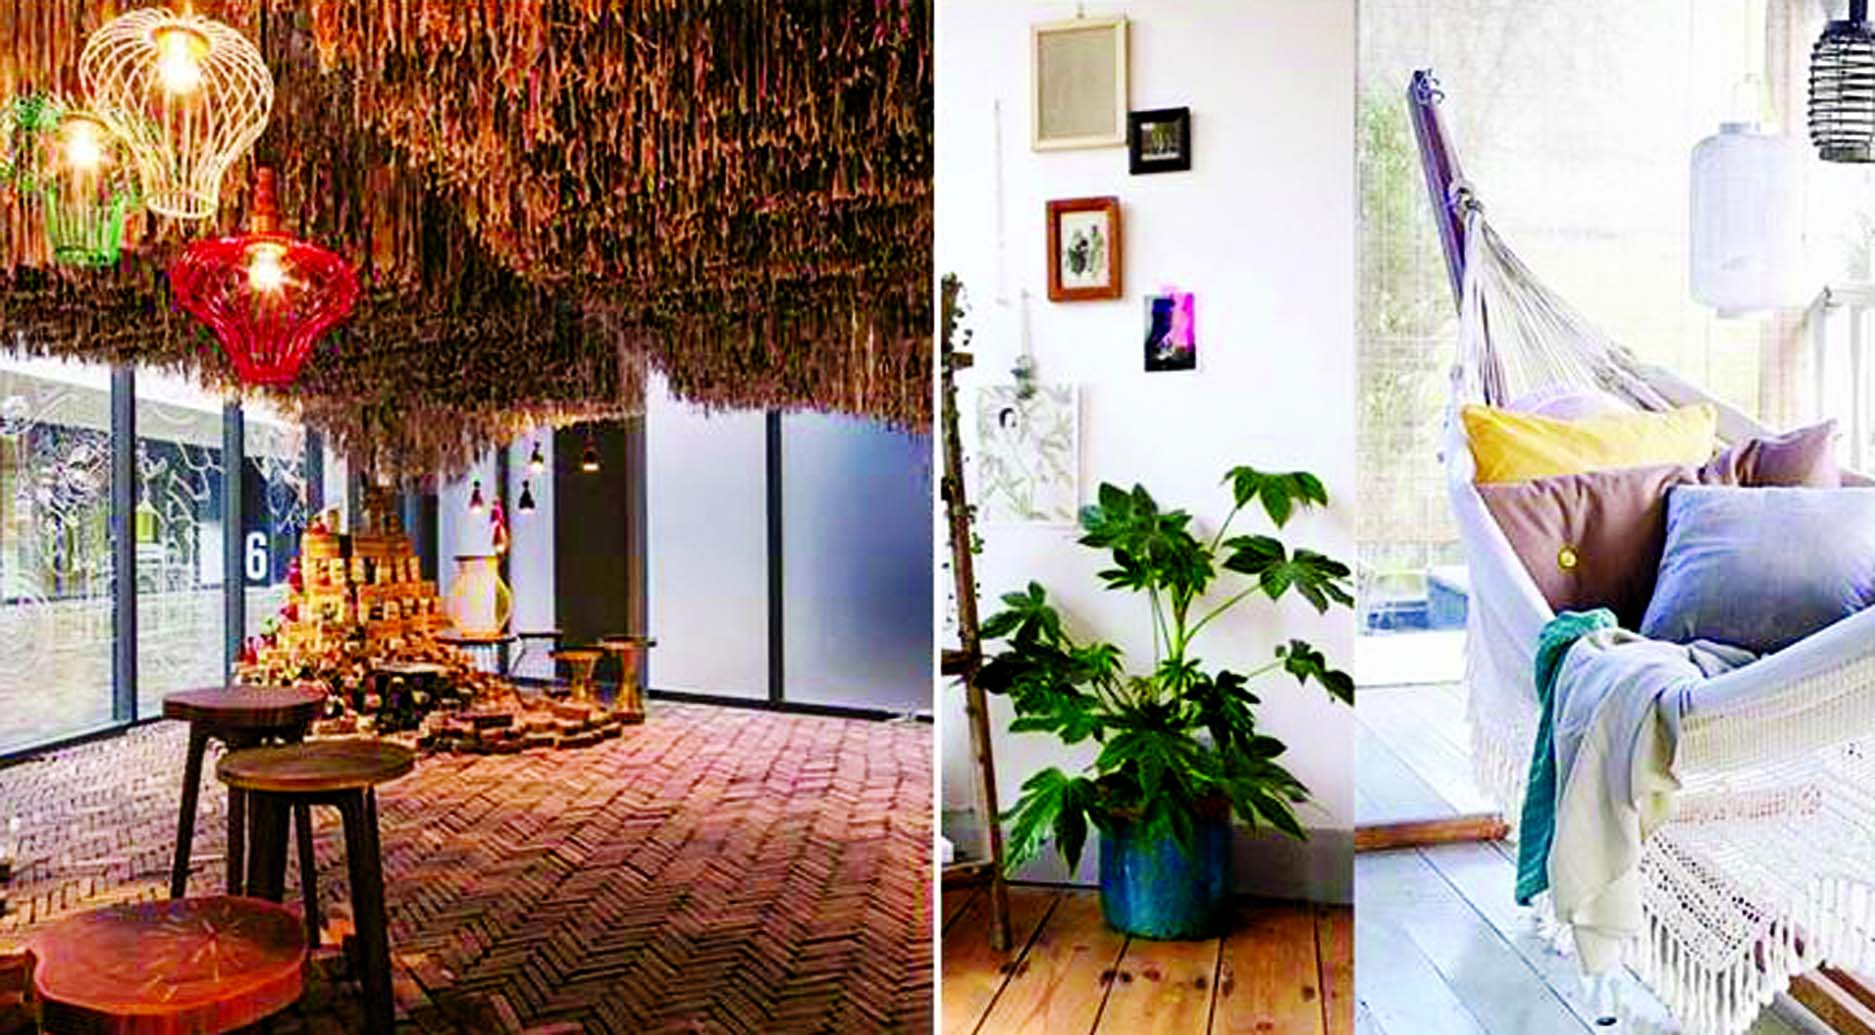 Planning to revamp your house? Say yes to eco-friendly flooring